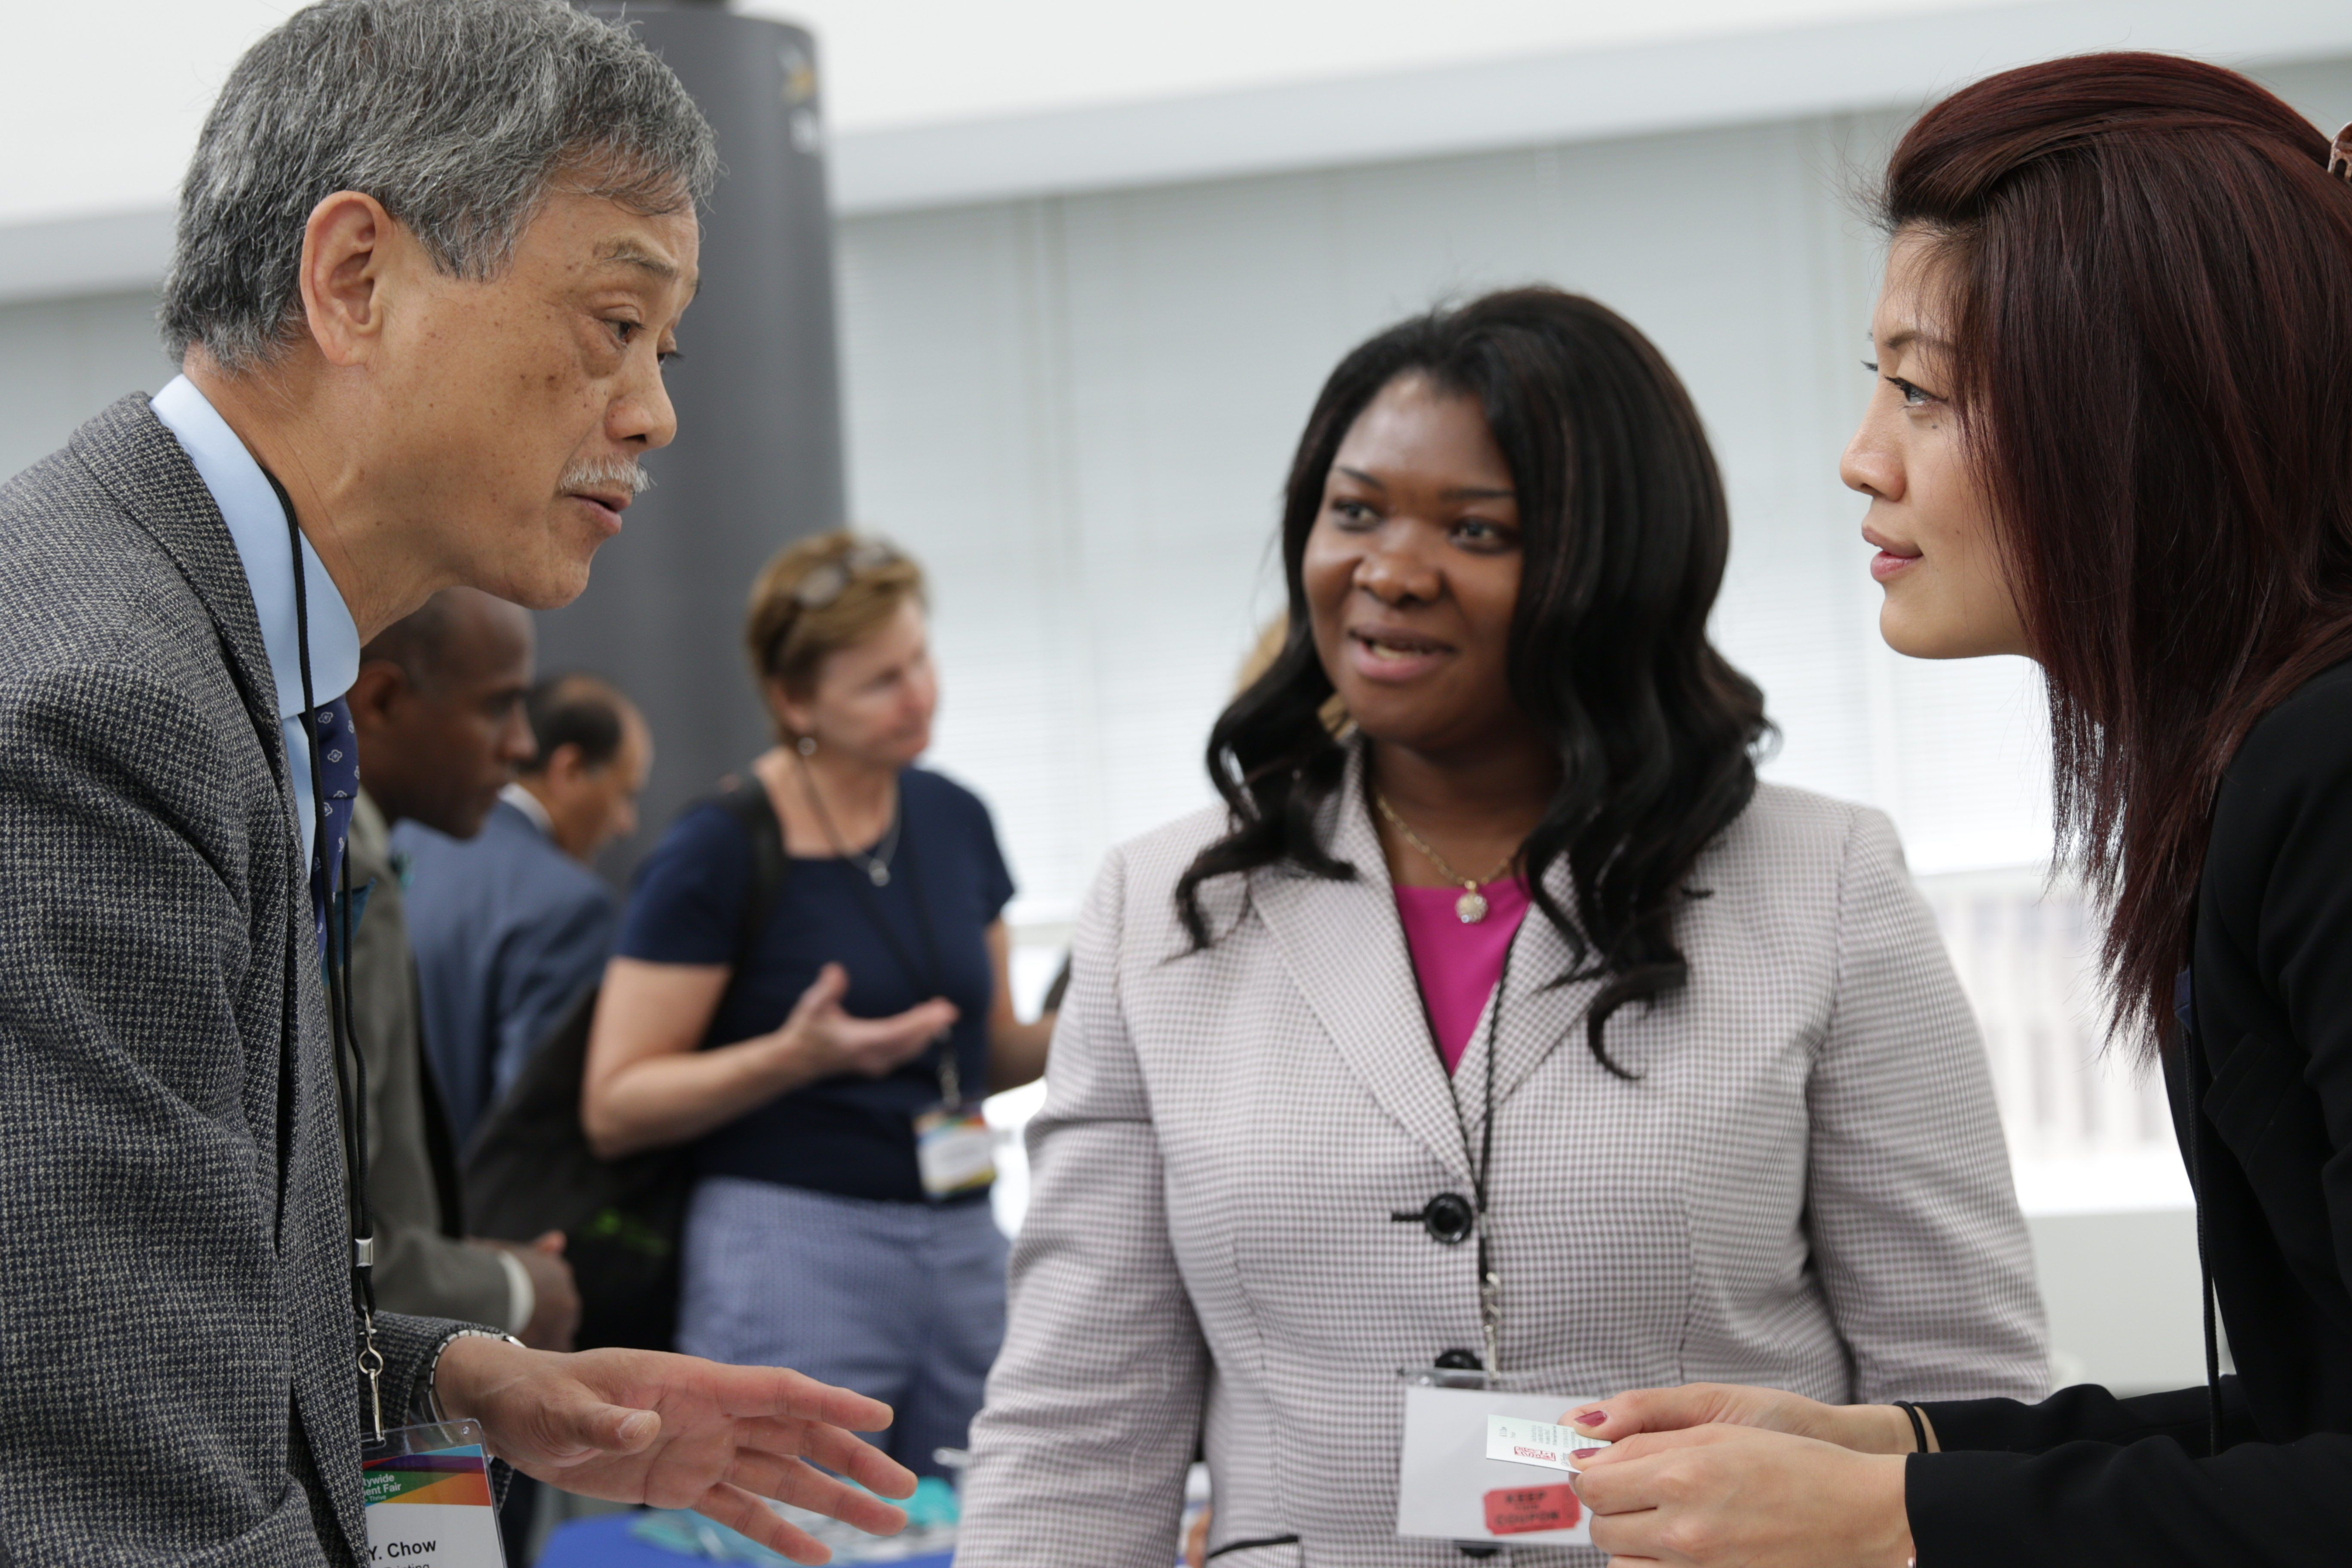 An Asian man, Asian woman, and black woman are in a discussion at the S.B.S. M.W.B.E Procurement Fair.